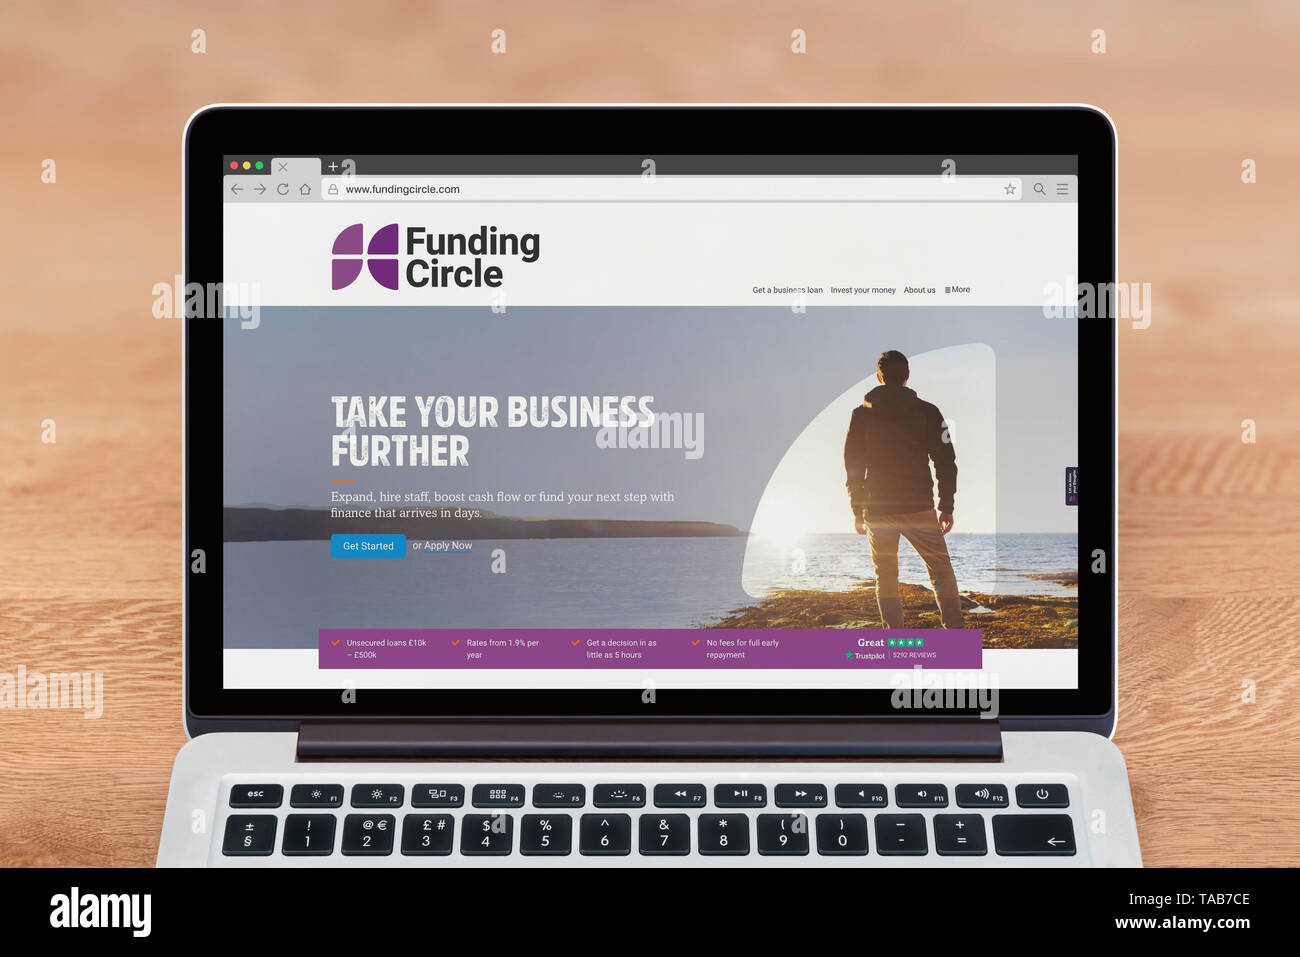 An Apple Macbook displays the Funding Circle website (Editorial use only). - Stock Image